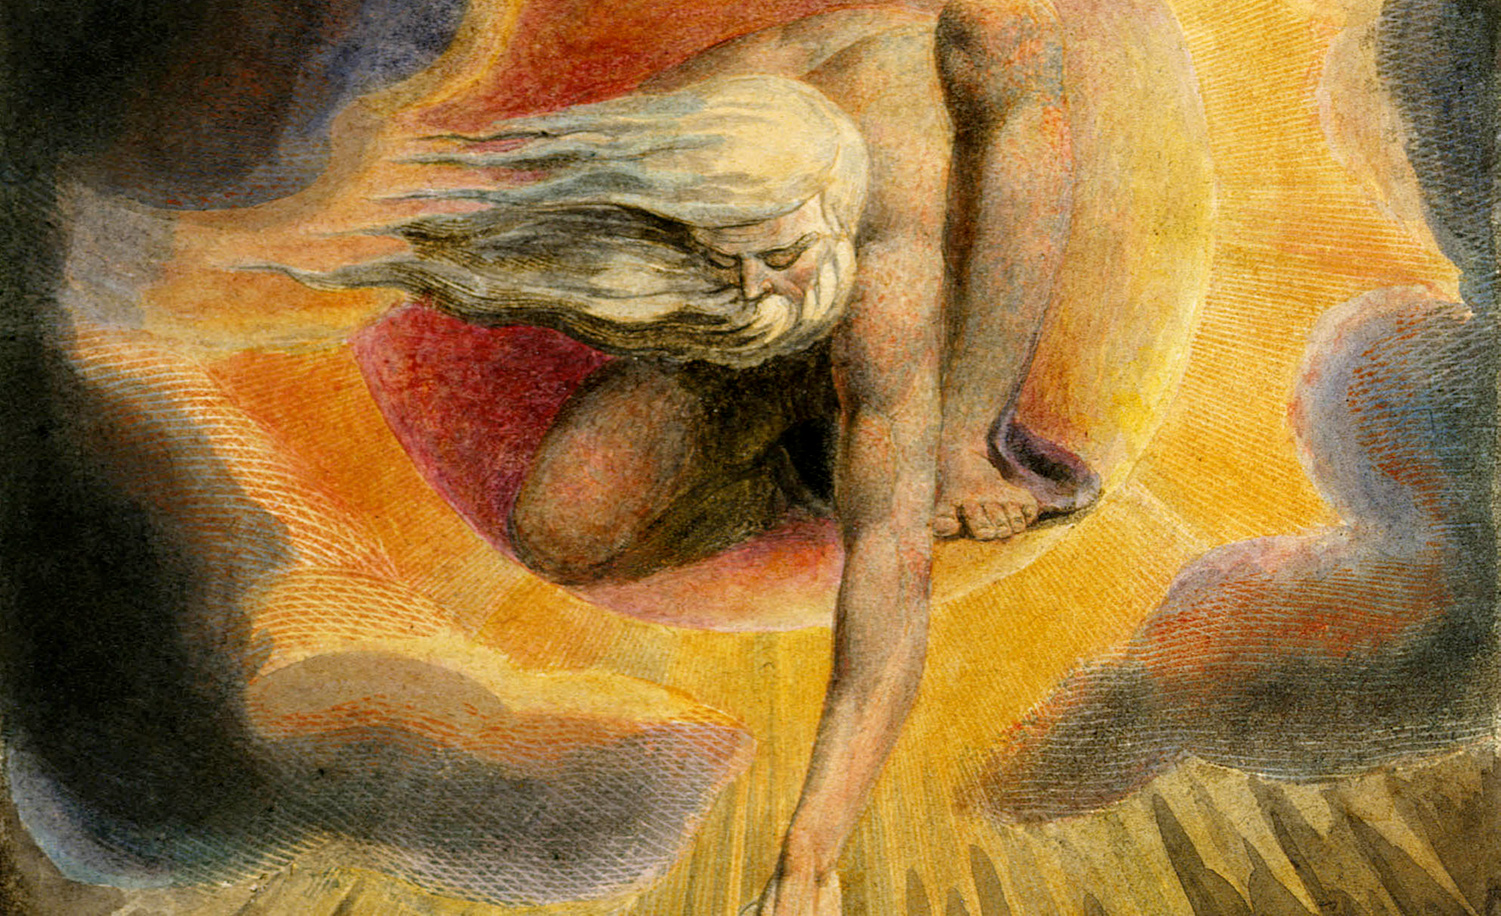 From The Ancient of Days by William Blake, 1794. Wikipedia.